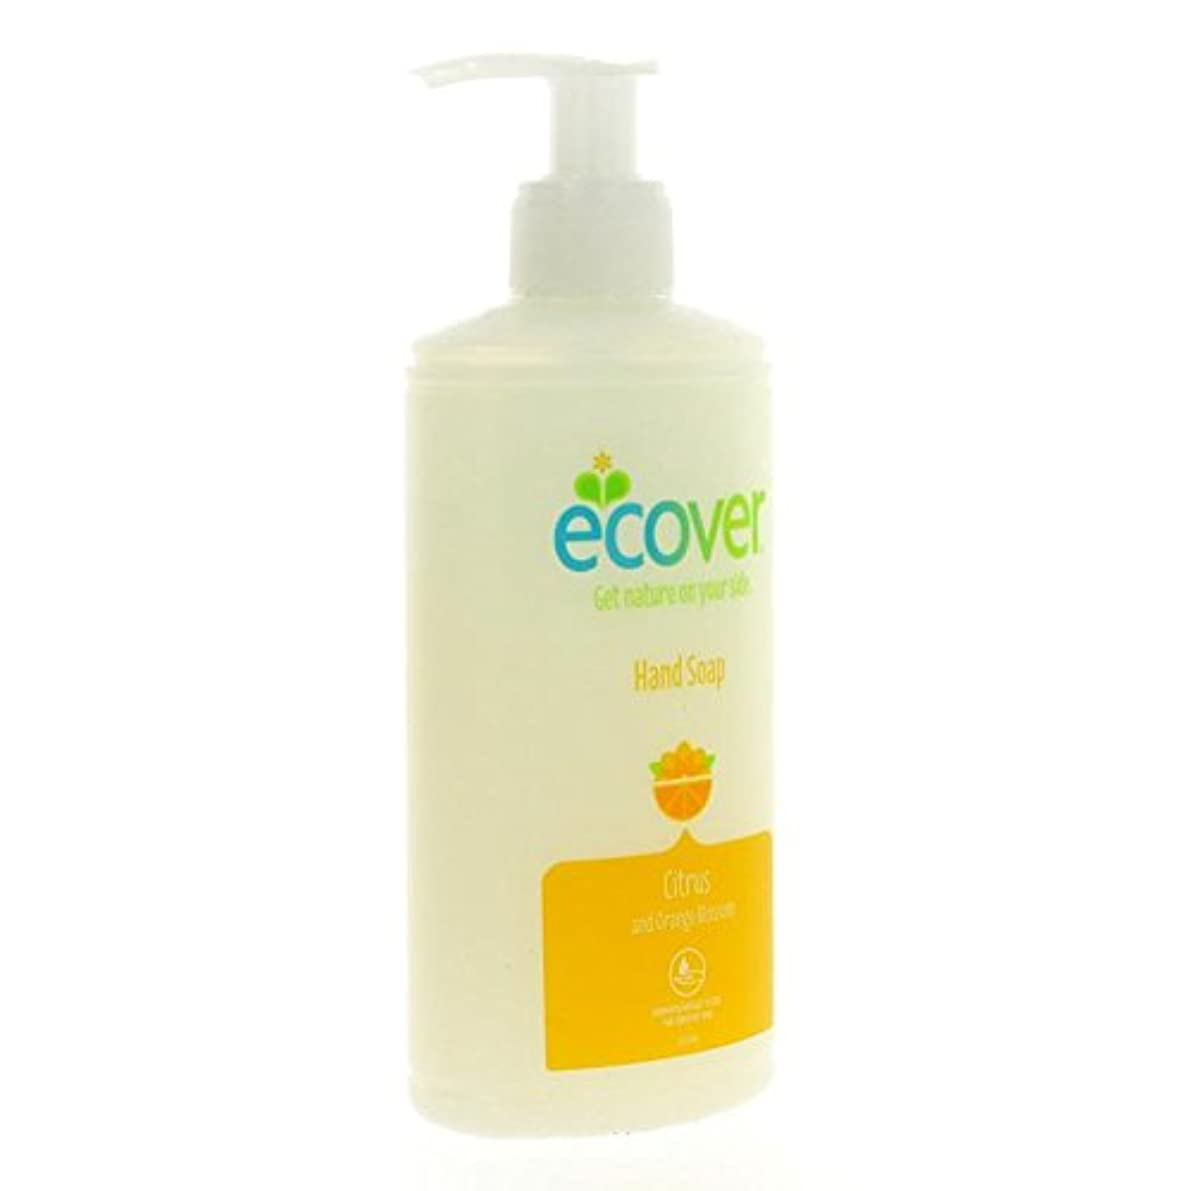 取り壊すみなす放つEcover - Hand Soap - Citrus and Orange Blossom - 250ml (Case of 6)